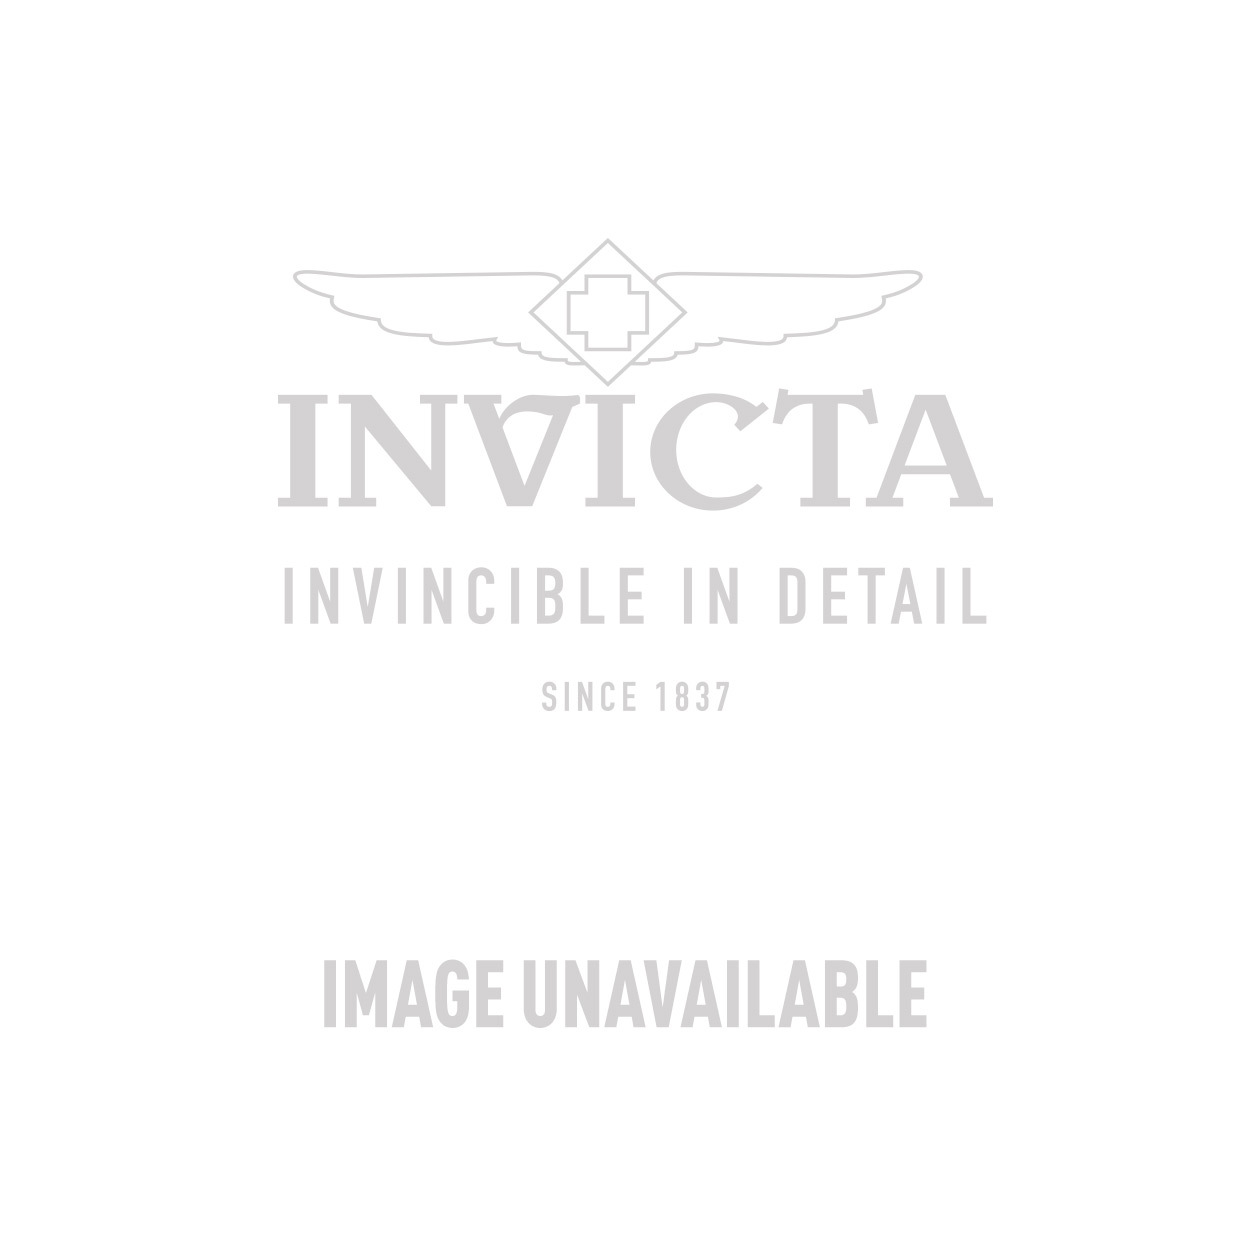 Invicta I-Force Quartz Watch - Stainless Steel case with Steel, Gold tone Stainless Steel band - Model 14961